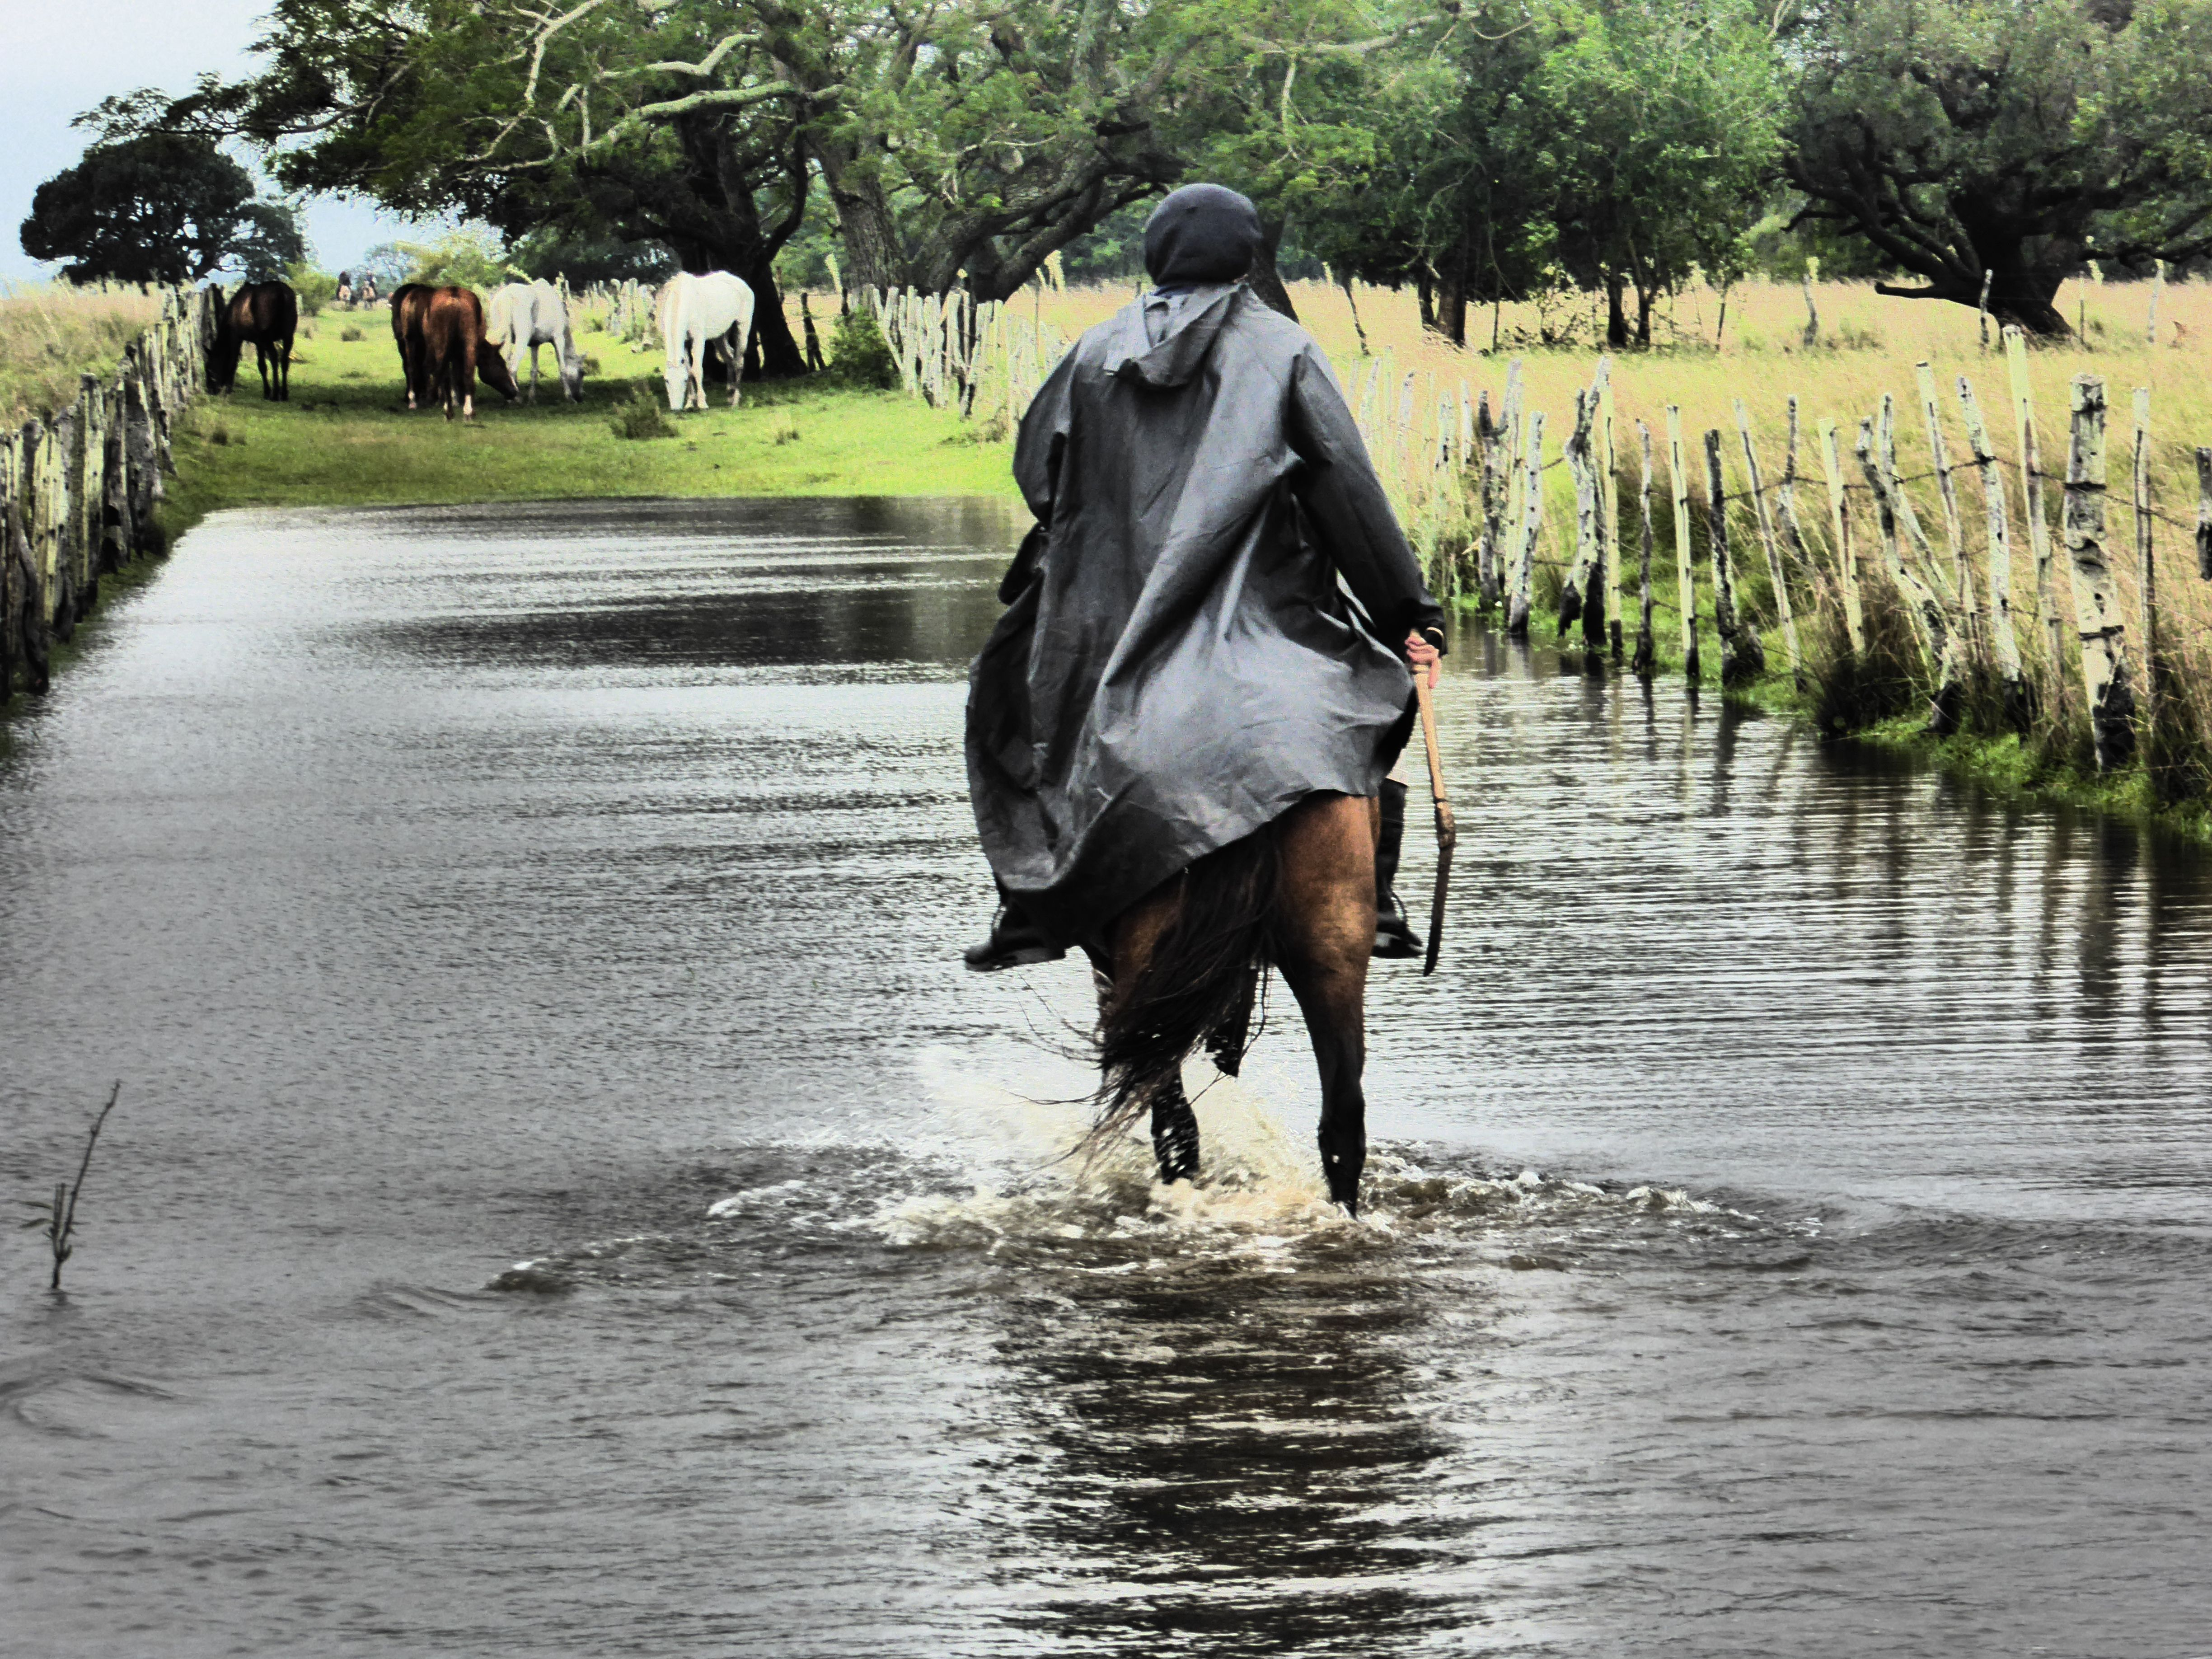 GAUCHO - THROUGH THE FIELDS - DON JOACQUIN - ESQUINA, ARGENTINA